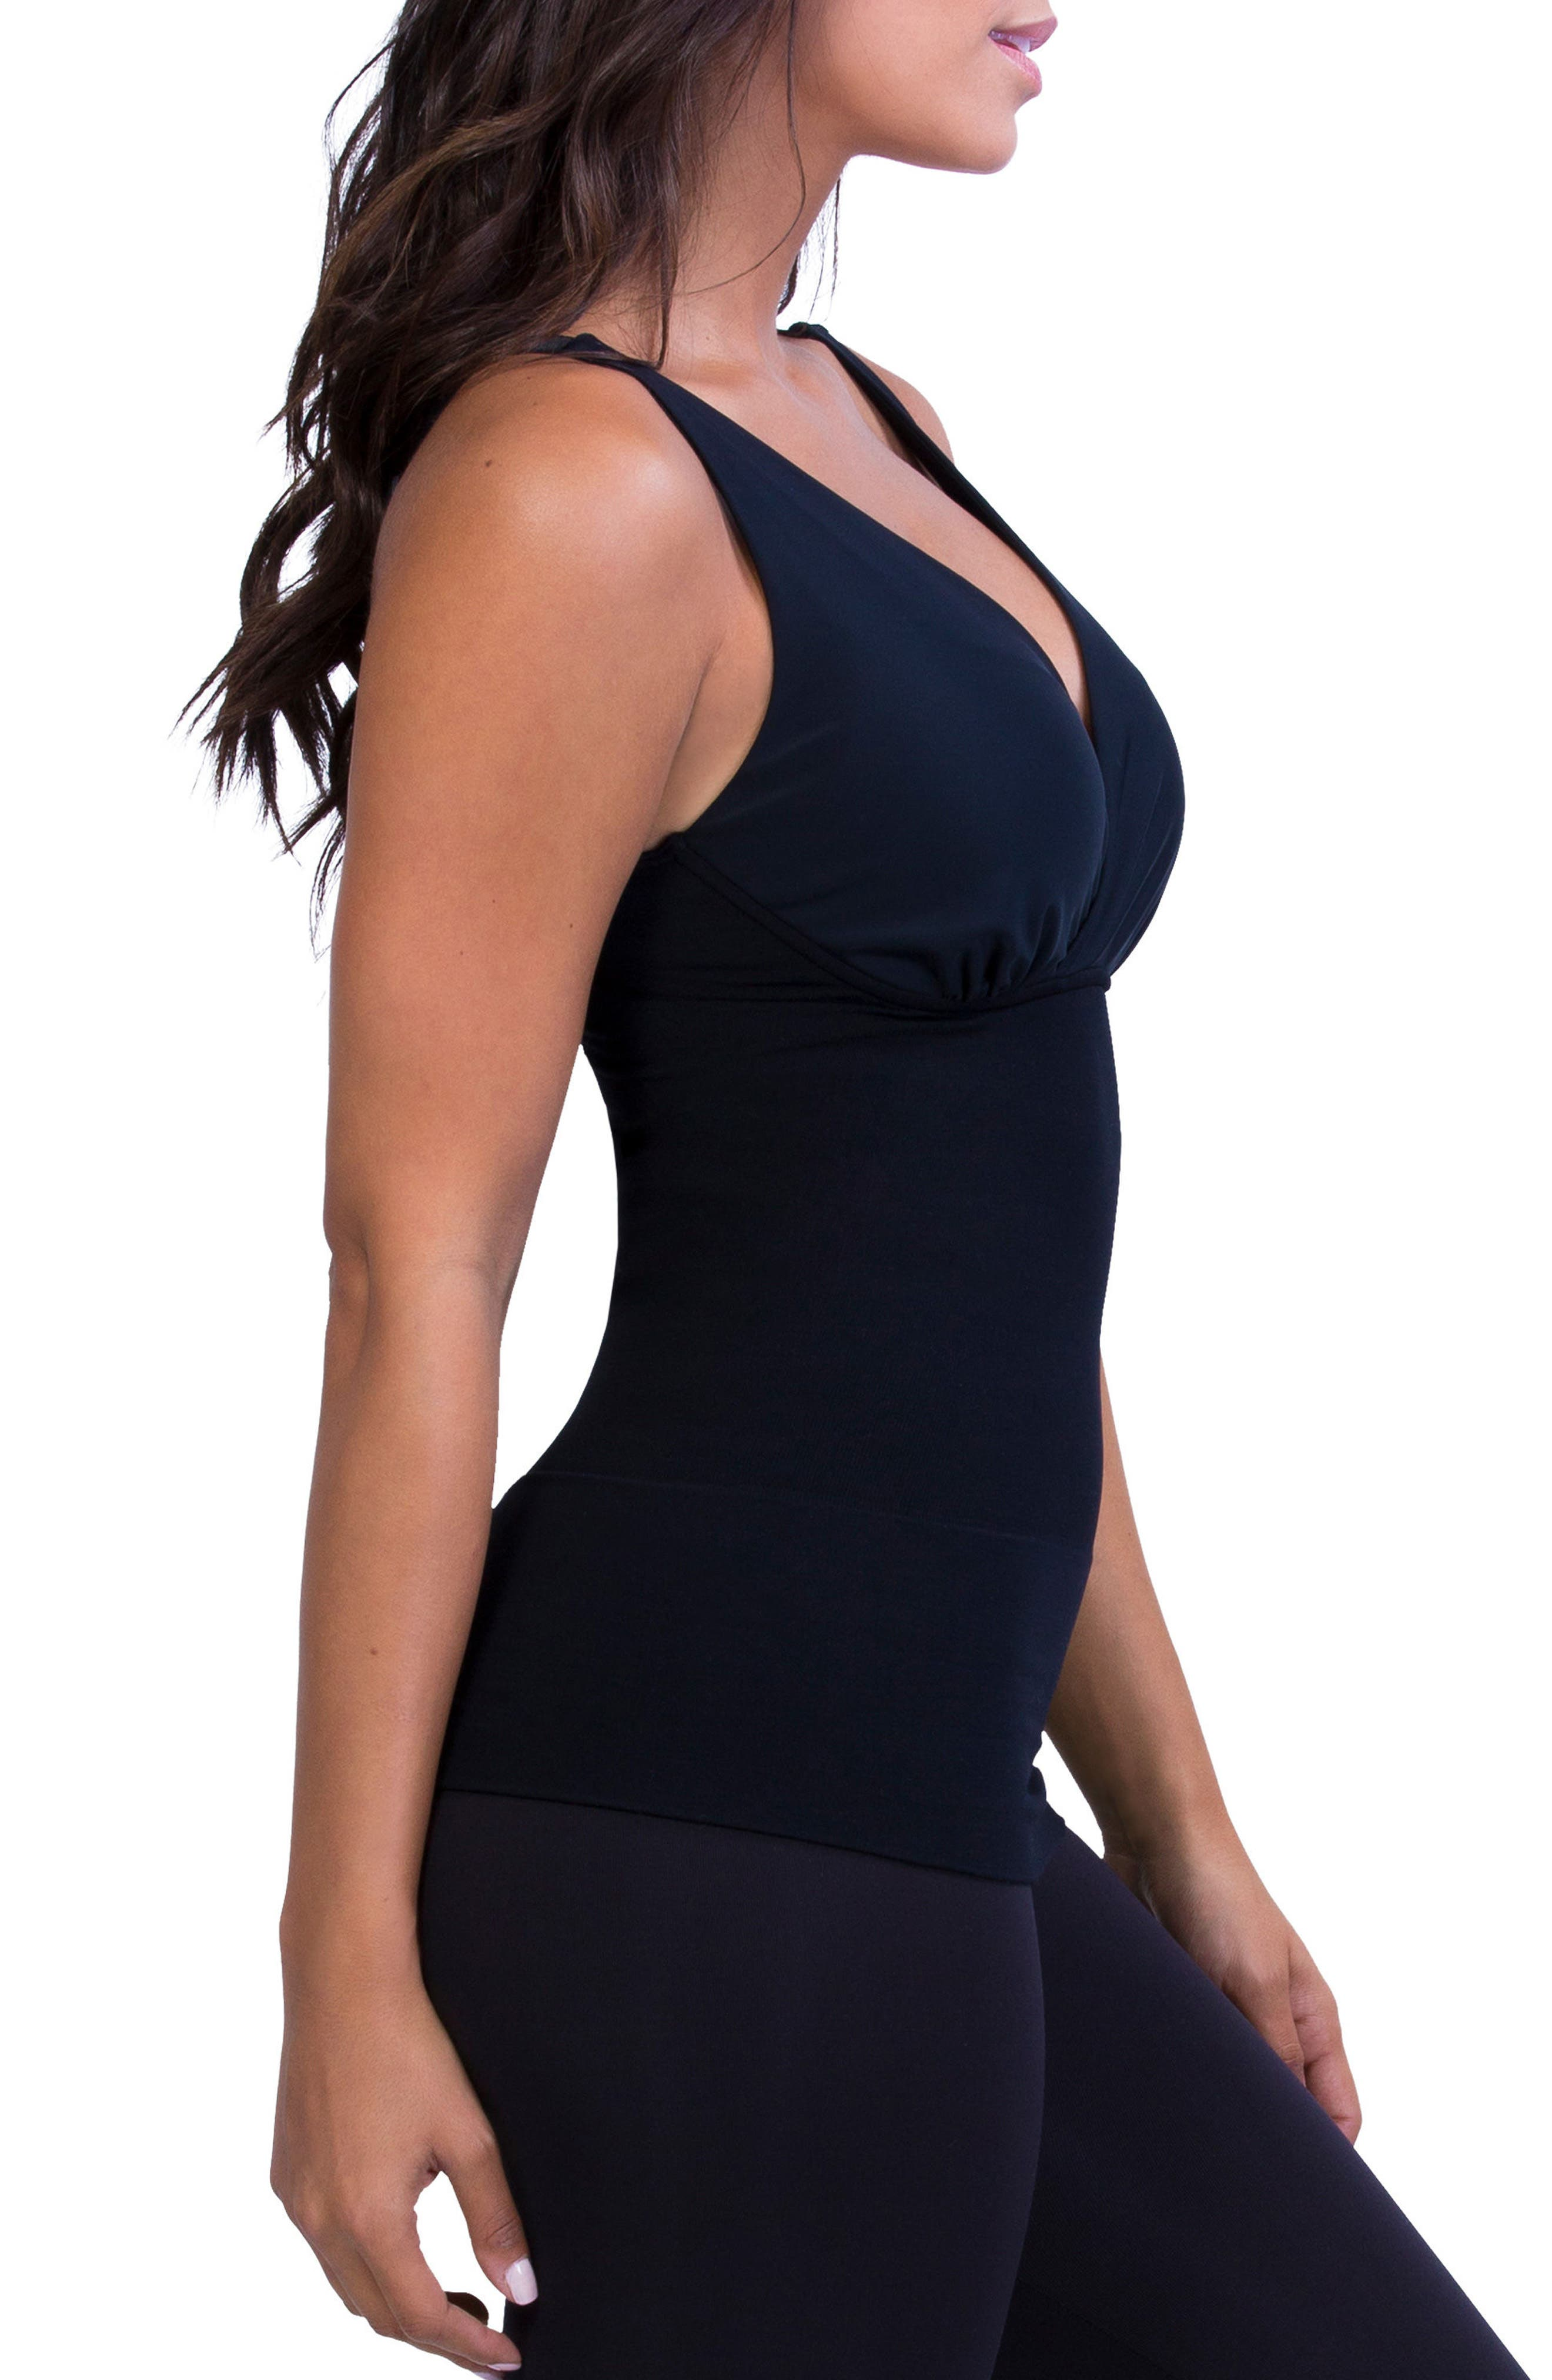 Post Maternity Compression & Nursing Tank,                             Alternate thumbnail 4, color,                             BLACK